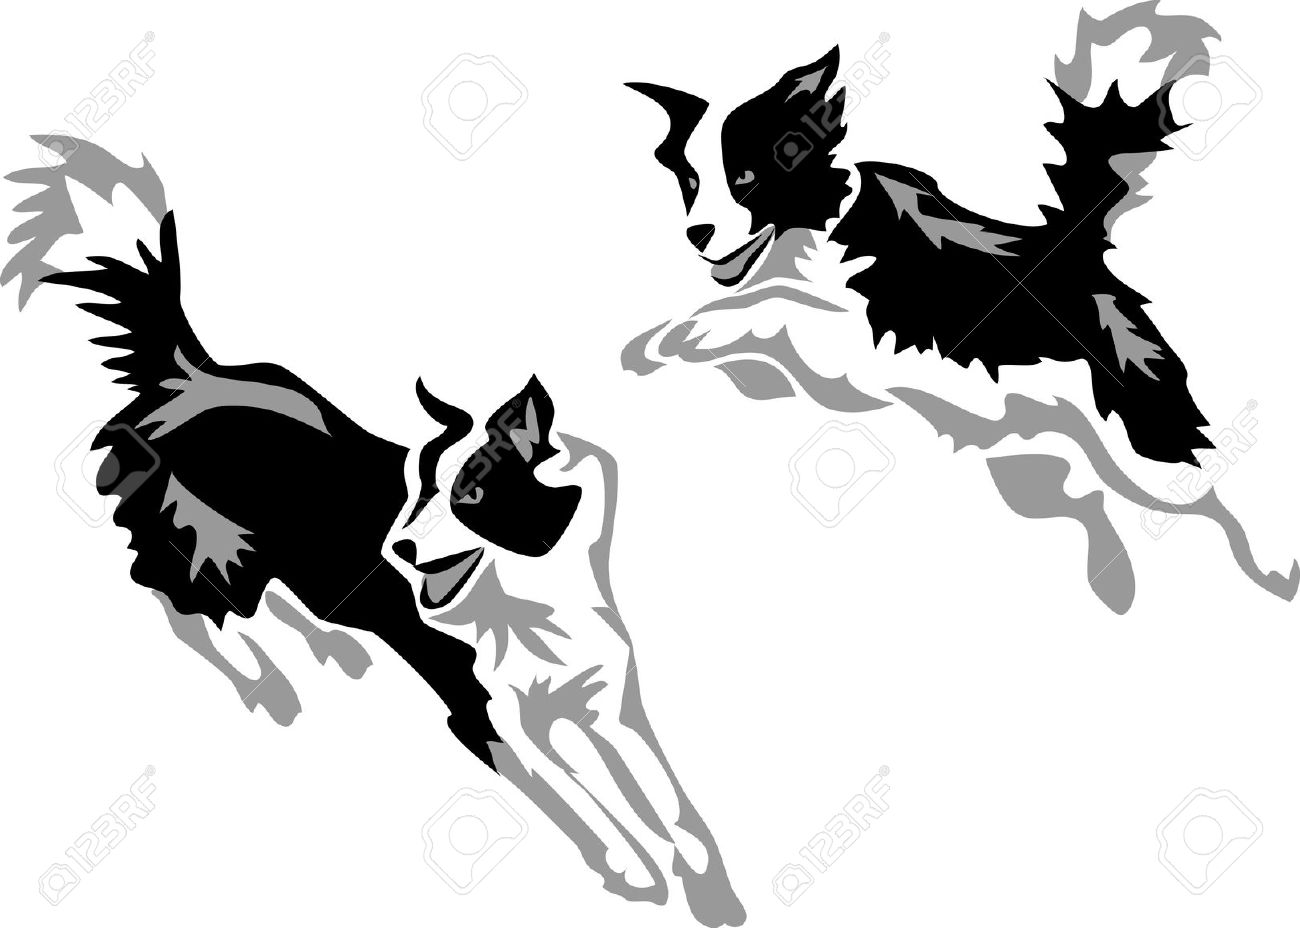 Real dog jumping clipart graphic black and white library Real dog jumping border clipart - ClipartFest graphic black and white library